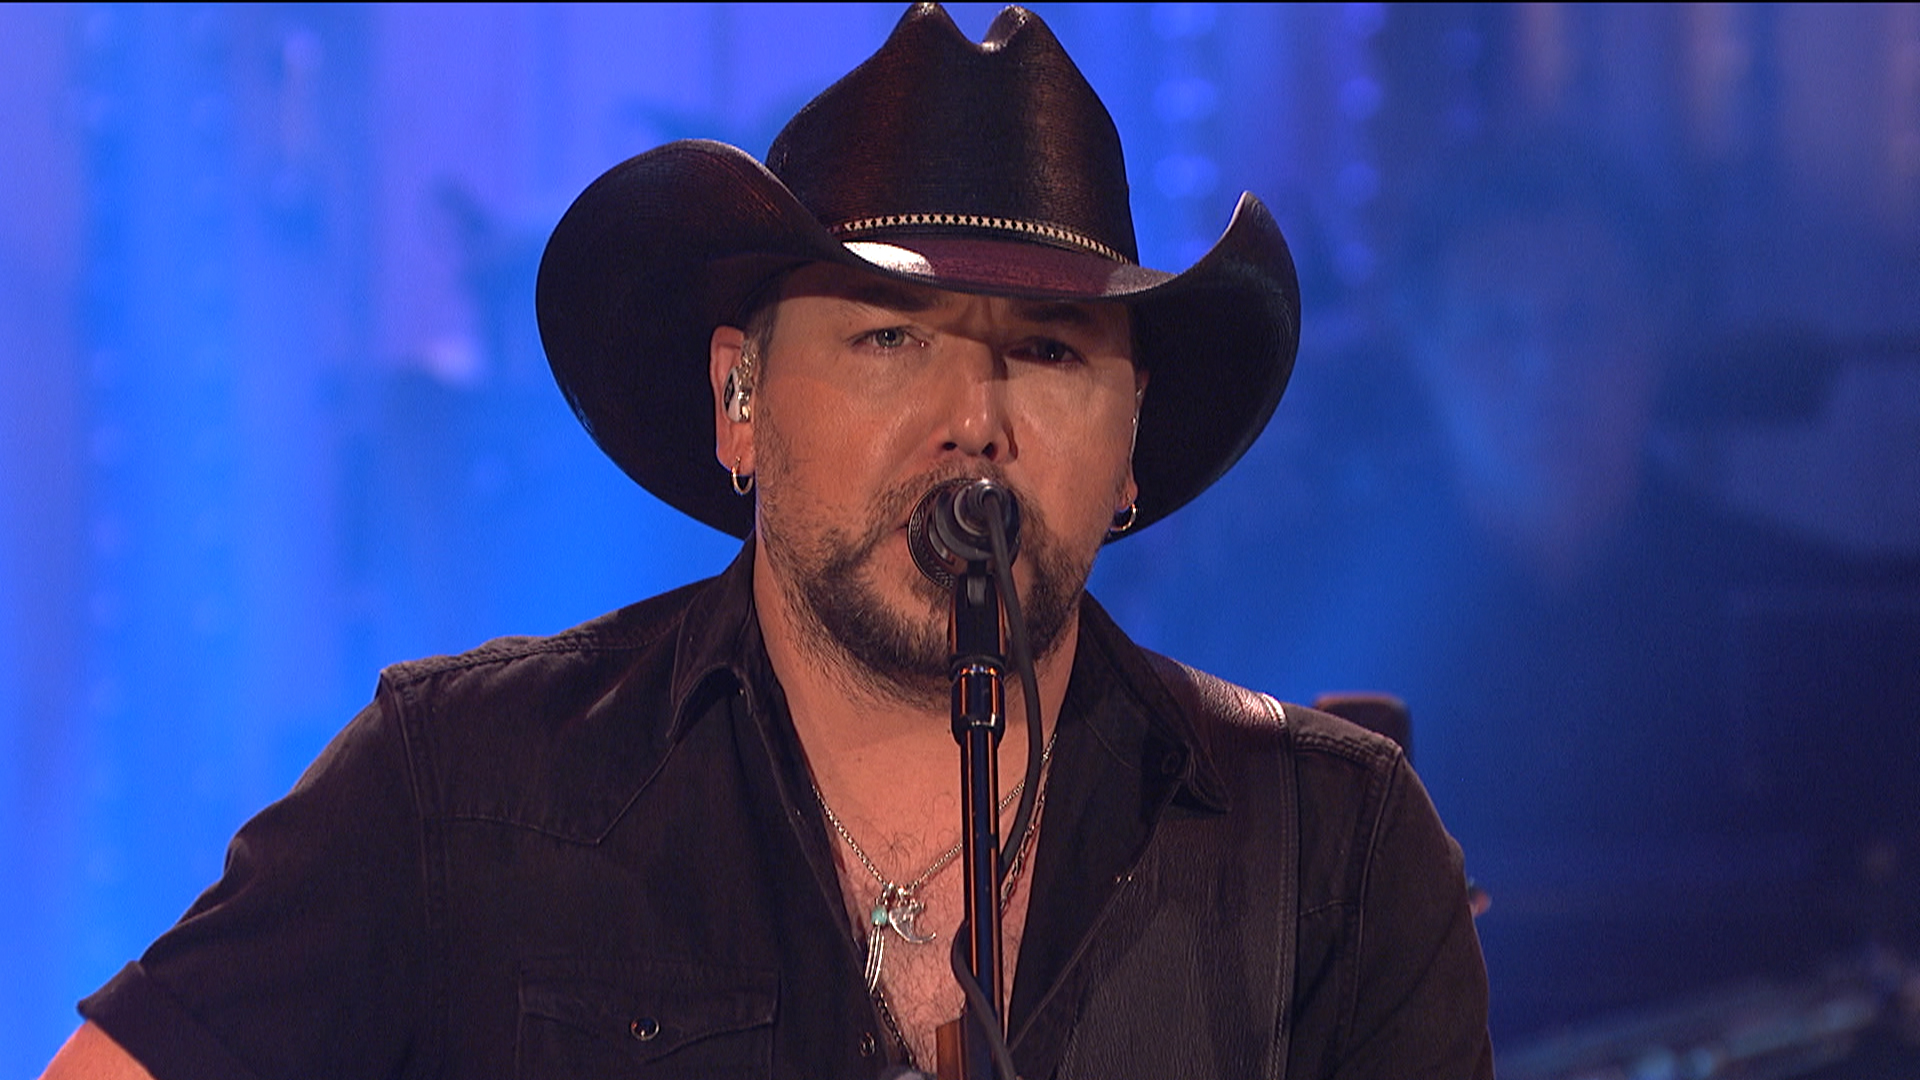 Watch Jason Aldean pay tribute to Las Vegas victims on 'SNL' with Tom Petty song